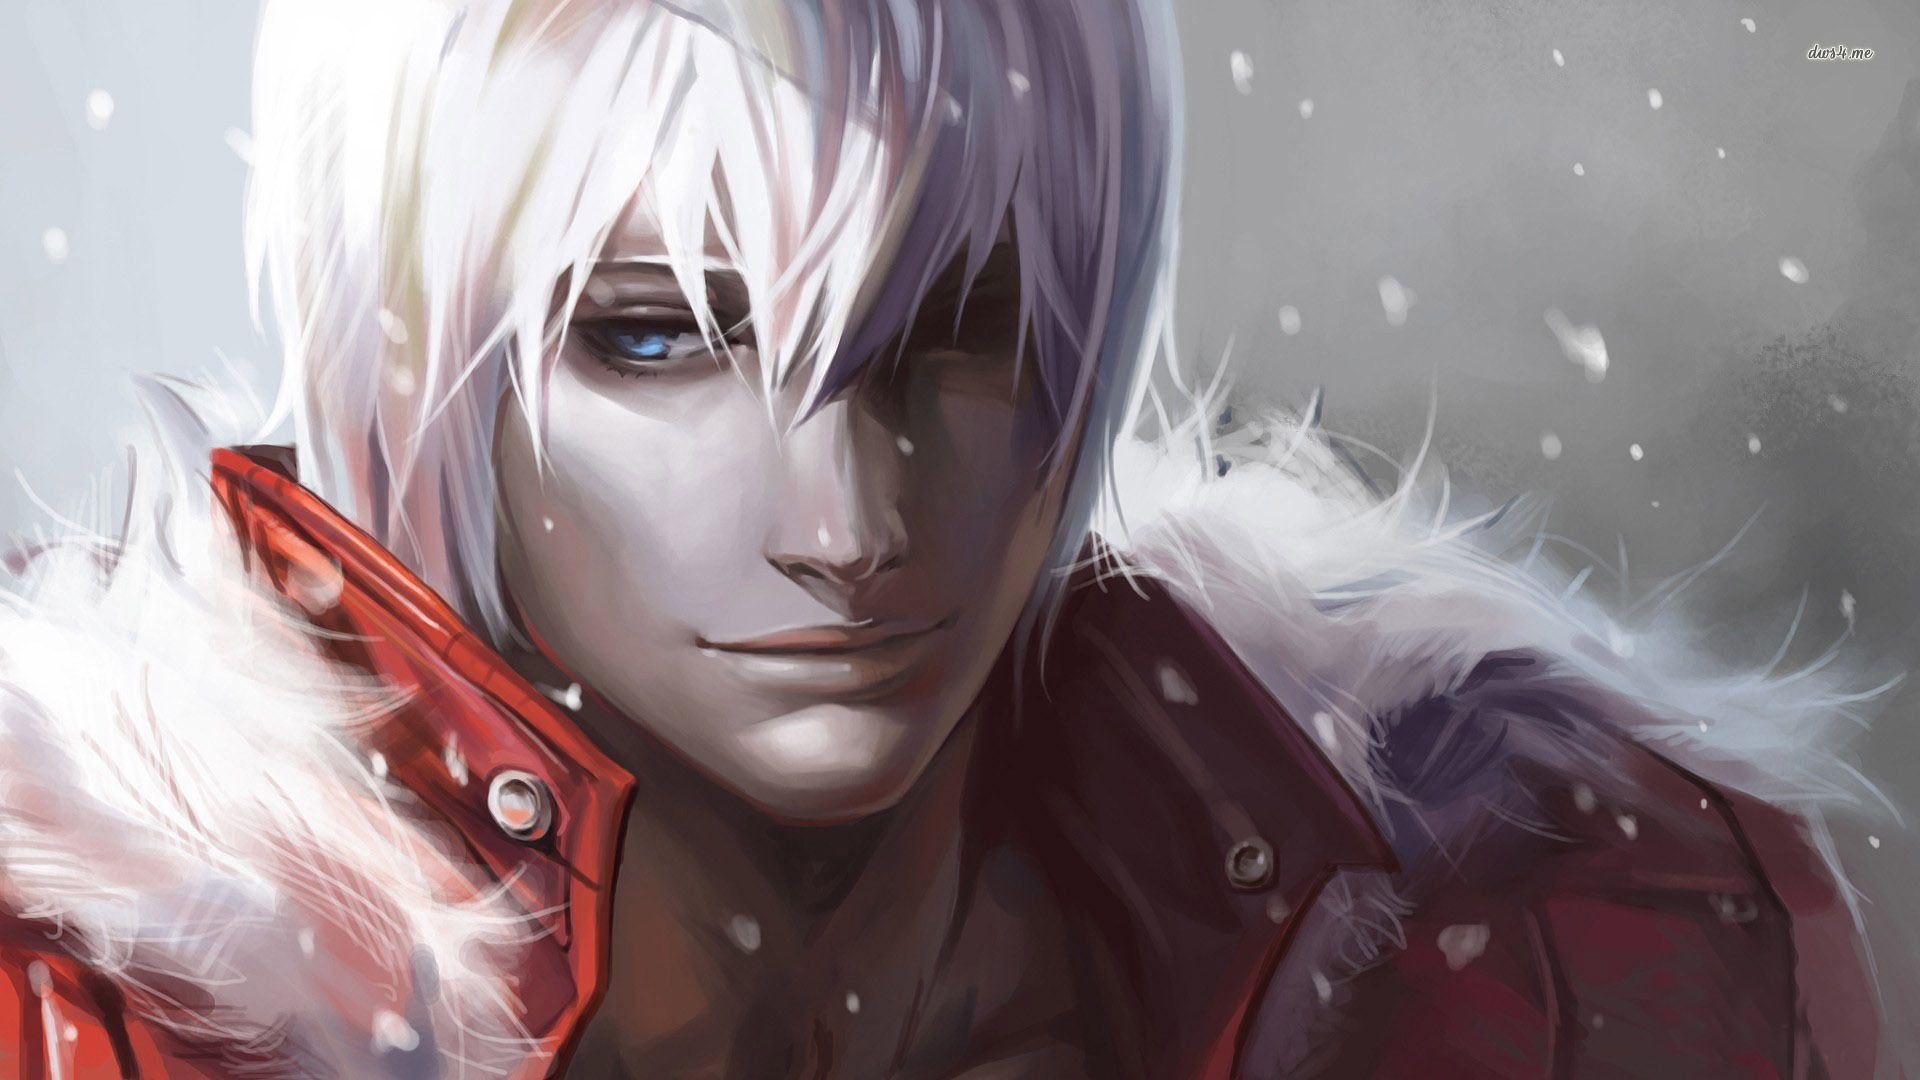 Dante devil may cry wallpaper game wallpapers 19574 winter dante devil may cry wallpaper game wallpapers 19574 winter snow by voltagebd Gallery